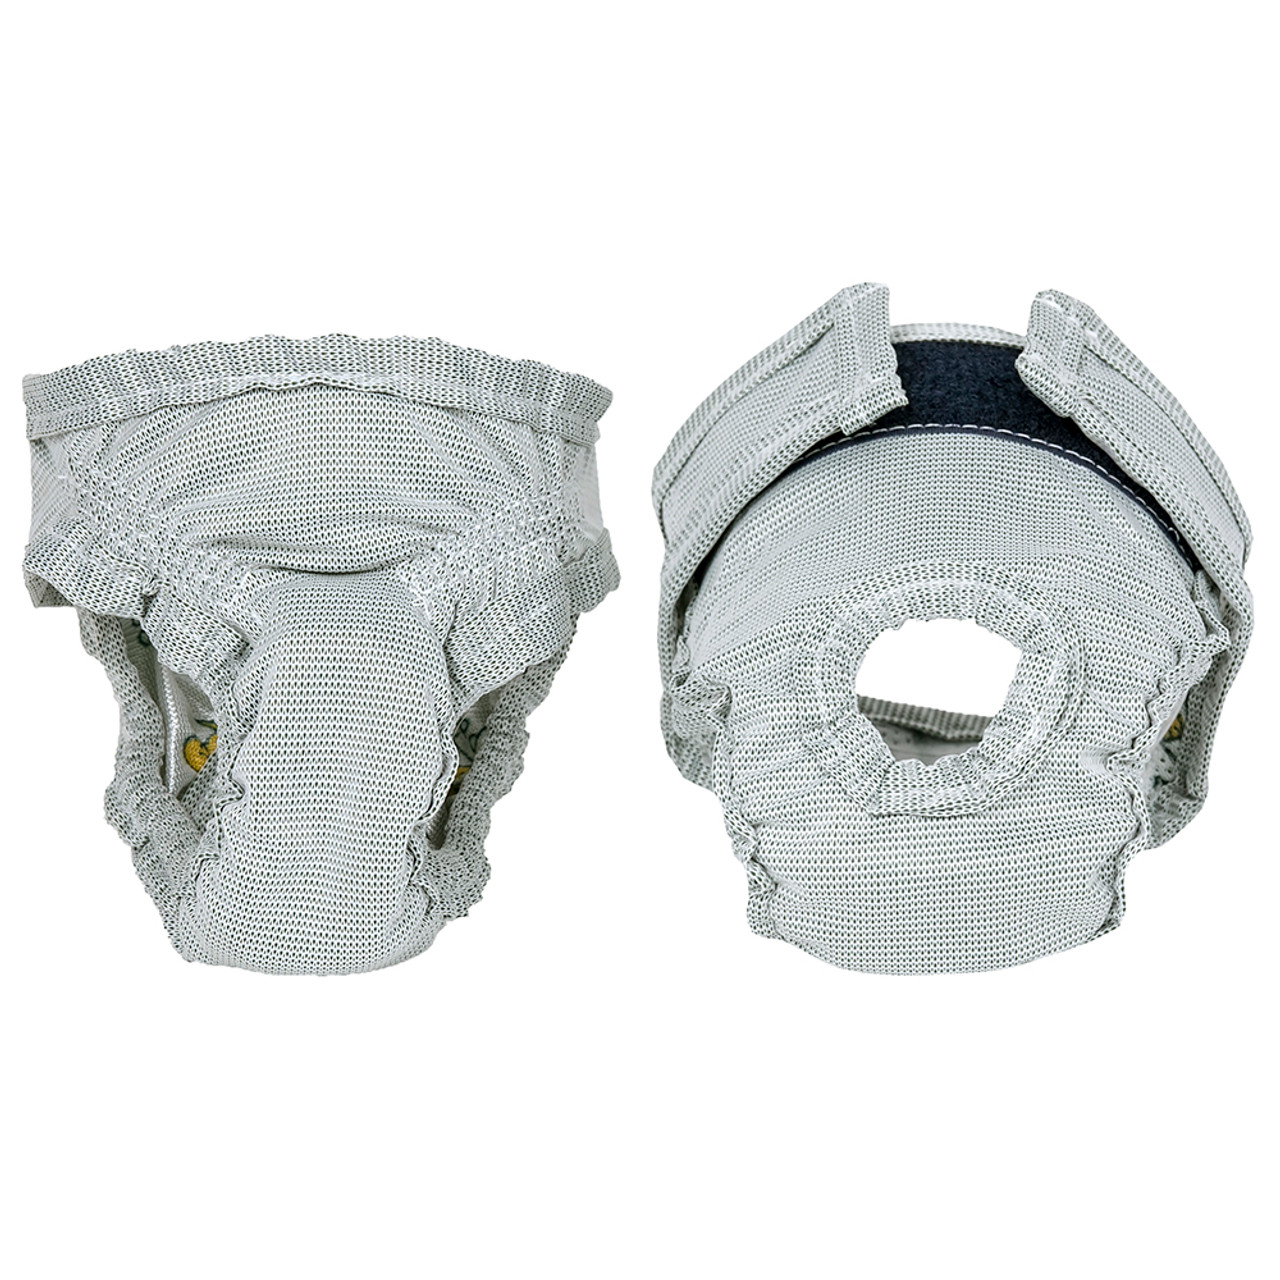 PoochPants Reusable Dog Diapers